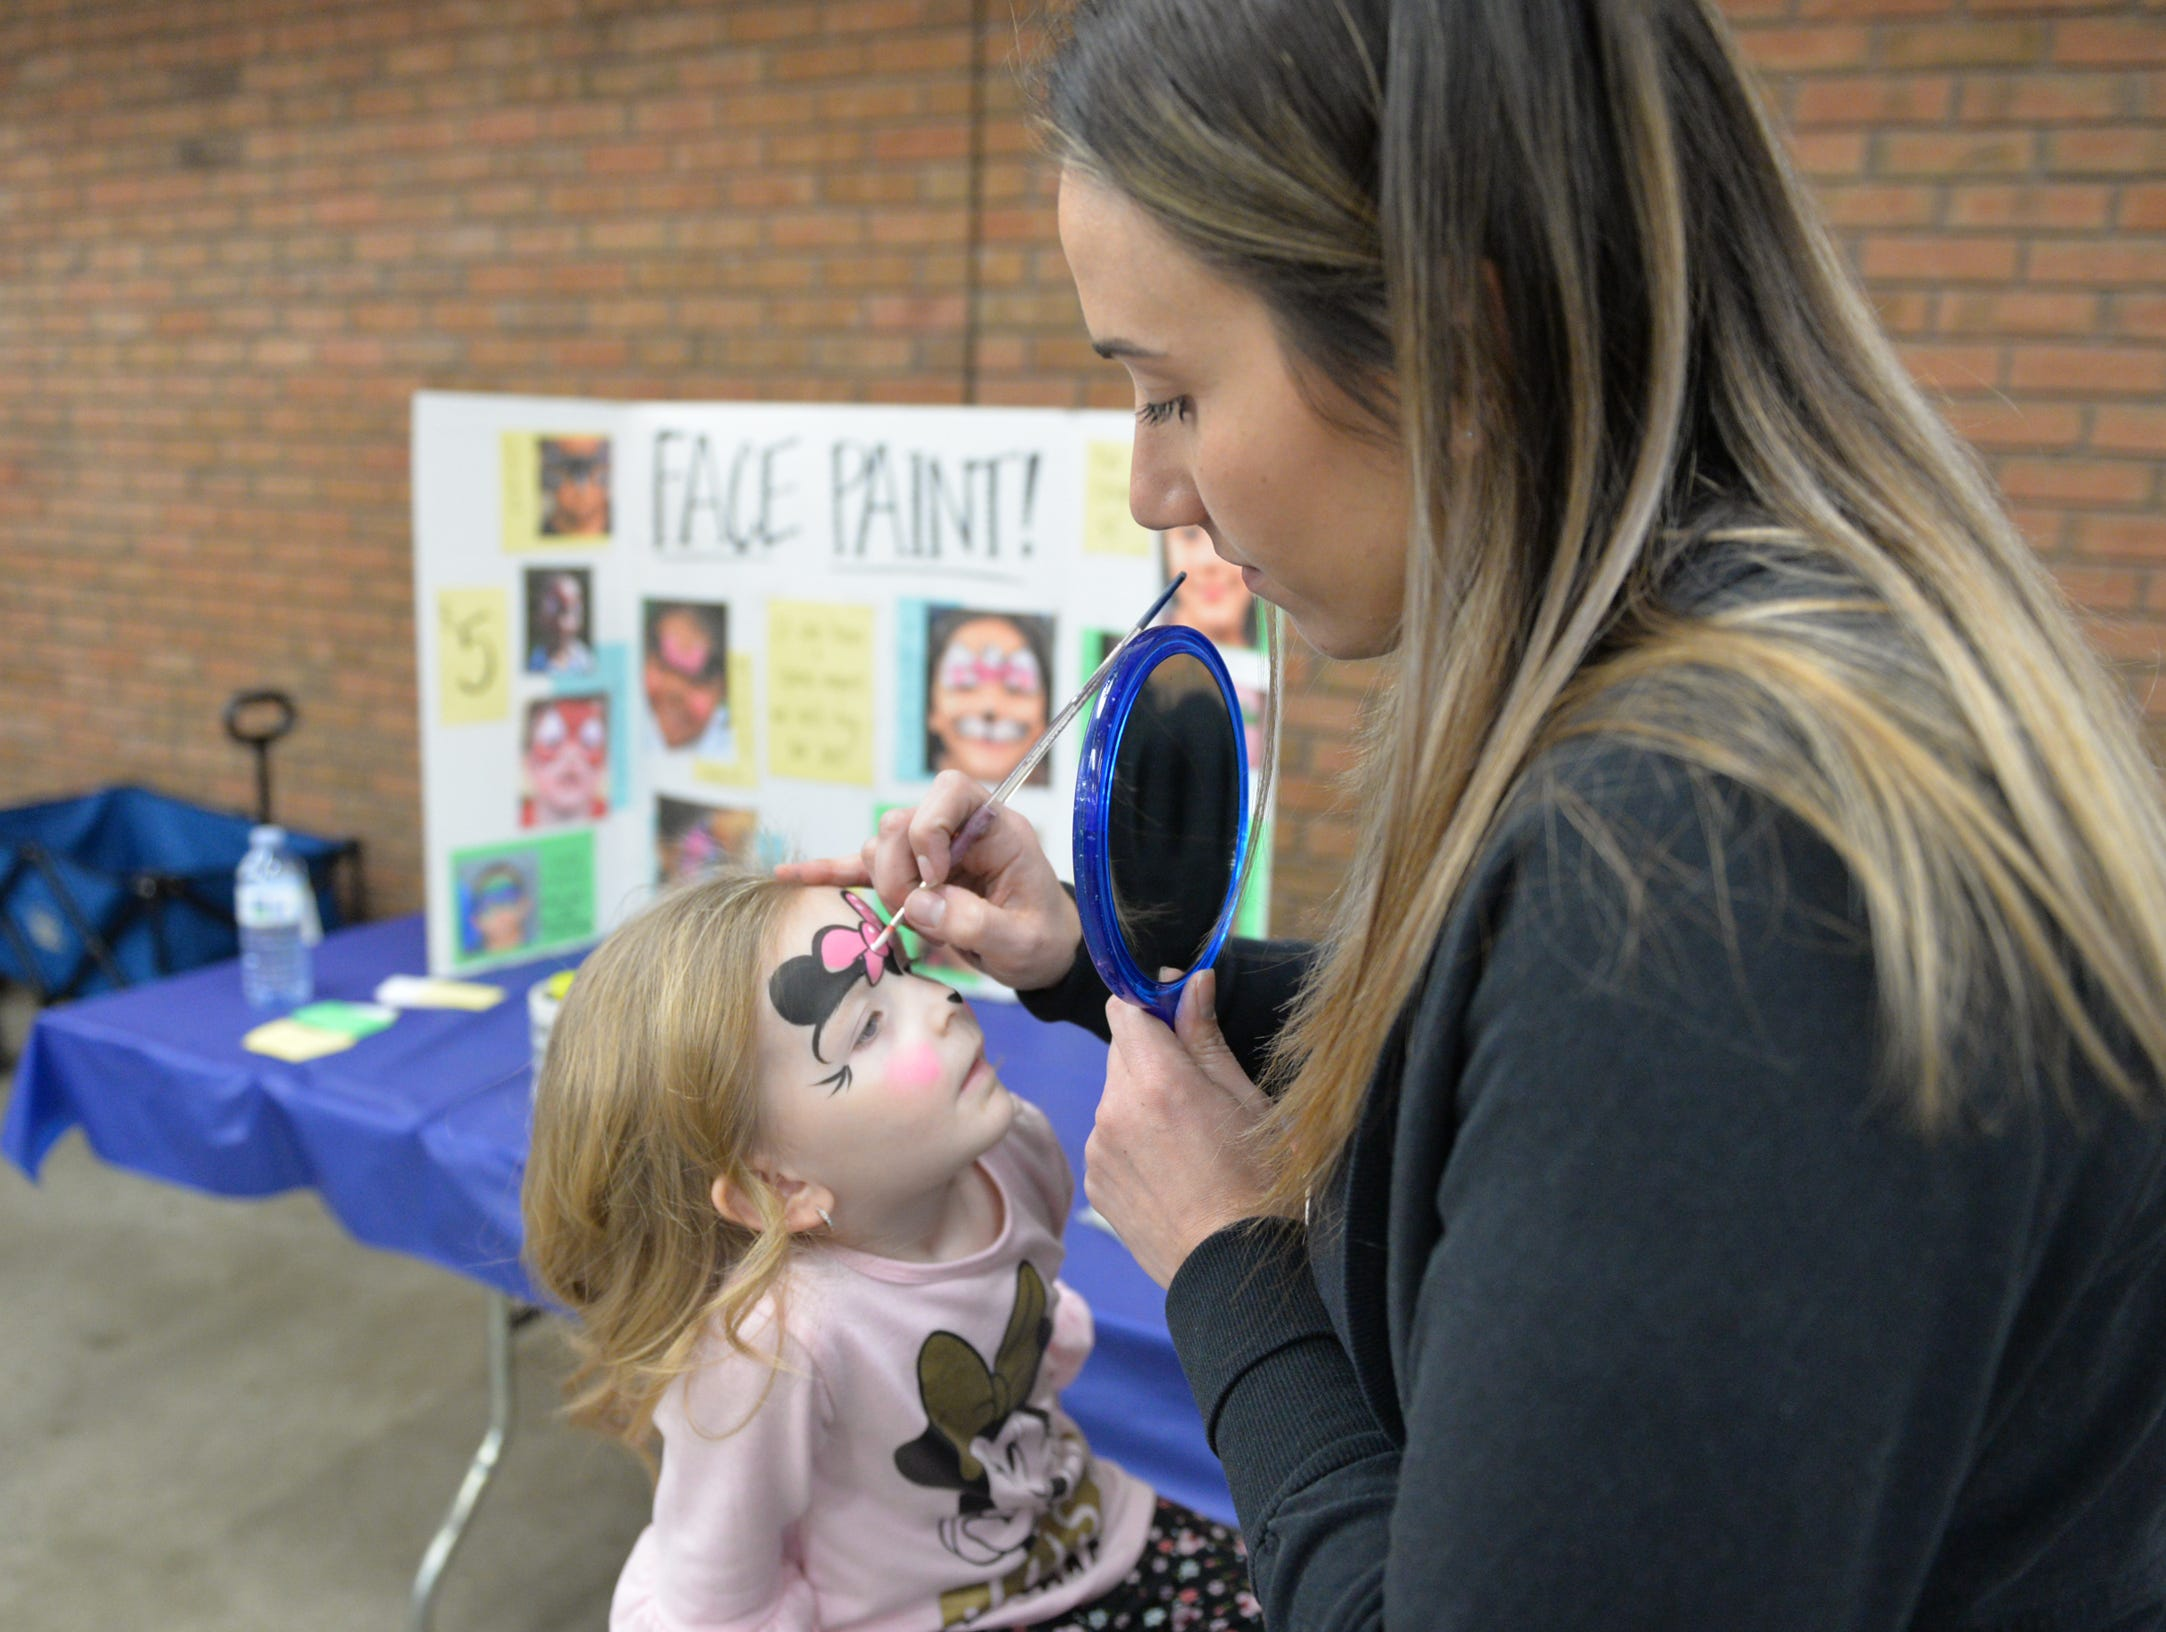 Face painting was on the agenda of two-year old Briella Buffington of Tower City, who visited The Lebanon Rotary Club's Bologna Fest & Winter Carnival with her grandmother on Saturday, January 26. The annual event was held at the Lebanon Valley Expo Center.